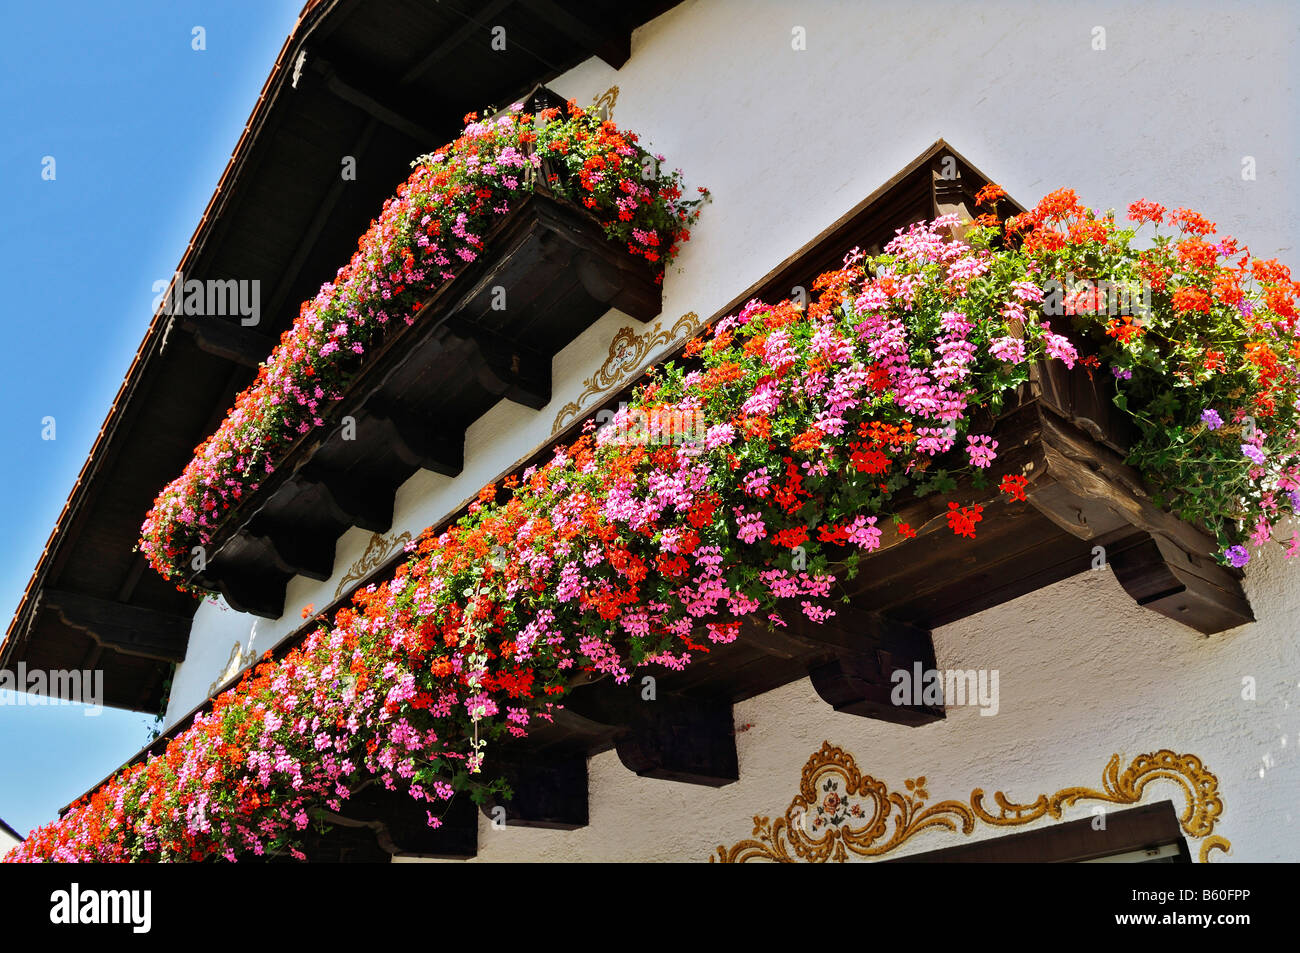 bavaria germany traditional balcony flowers stockfotos. Black Bedroom Furniture Sets. Home Design Ideas